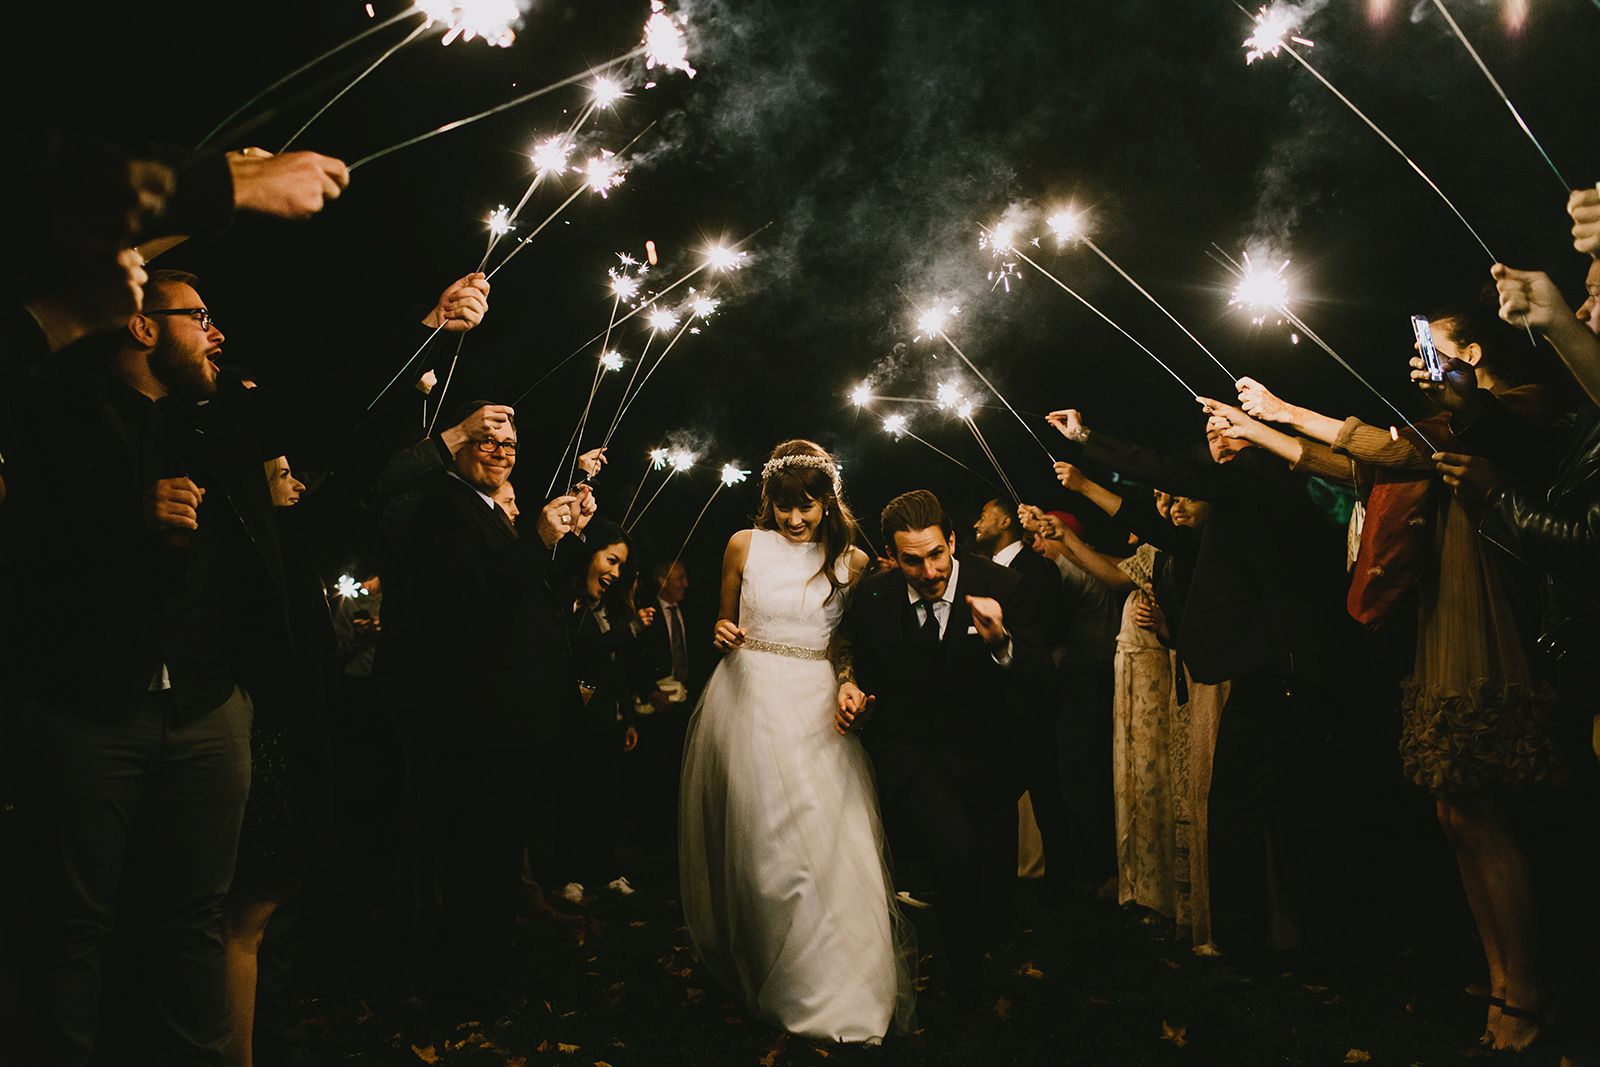 This Woodsy Wedding Is Low-Key Elegance Mastered #refinery29  http://www.refinery29.com/christine-mcmillen-woods-wedding#slide20